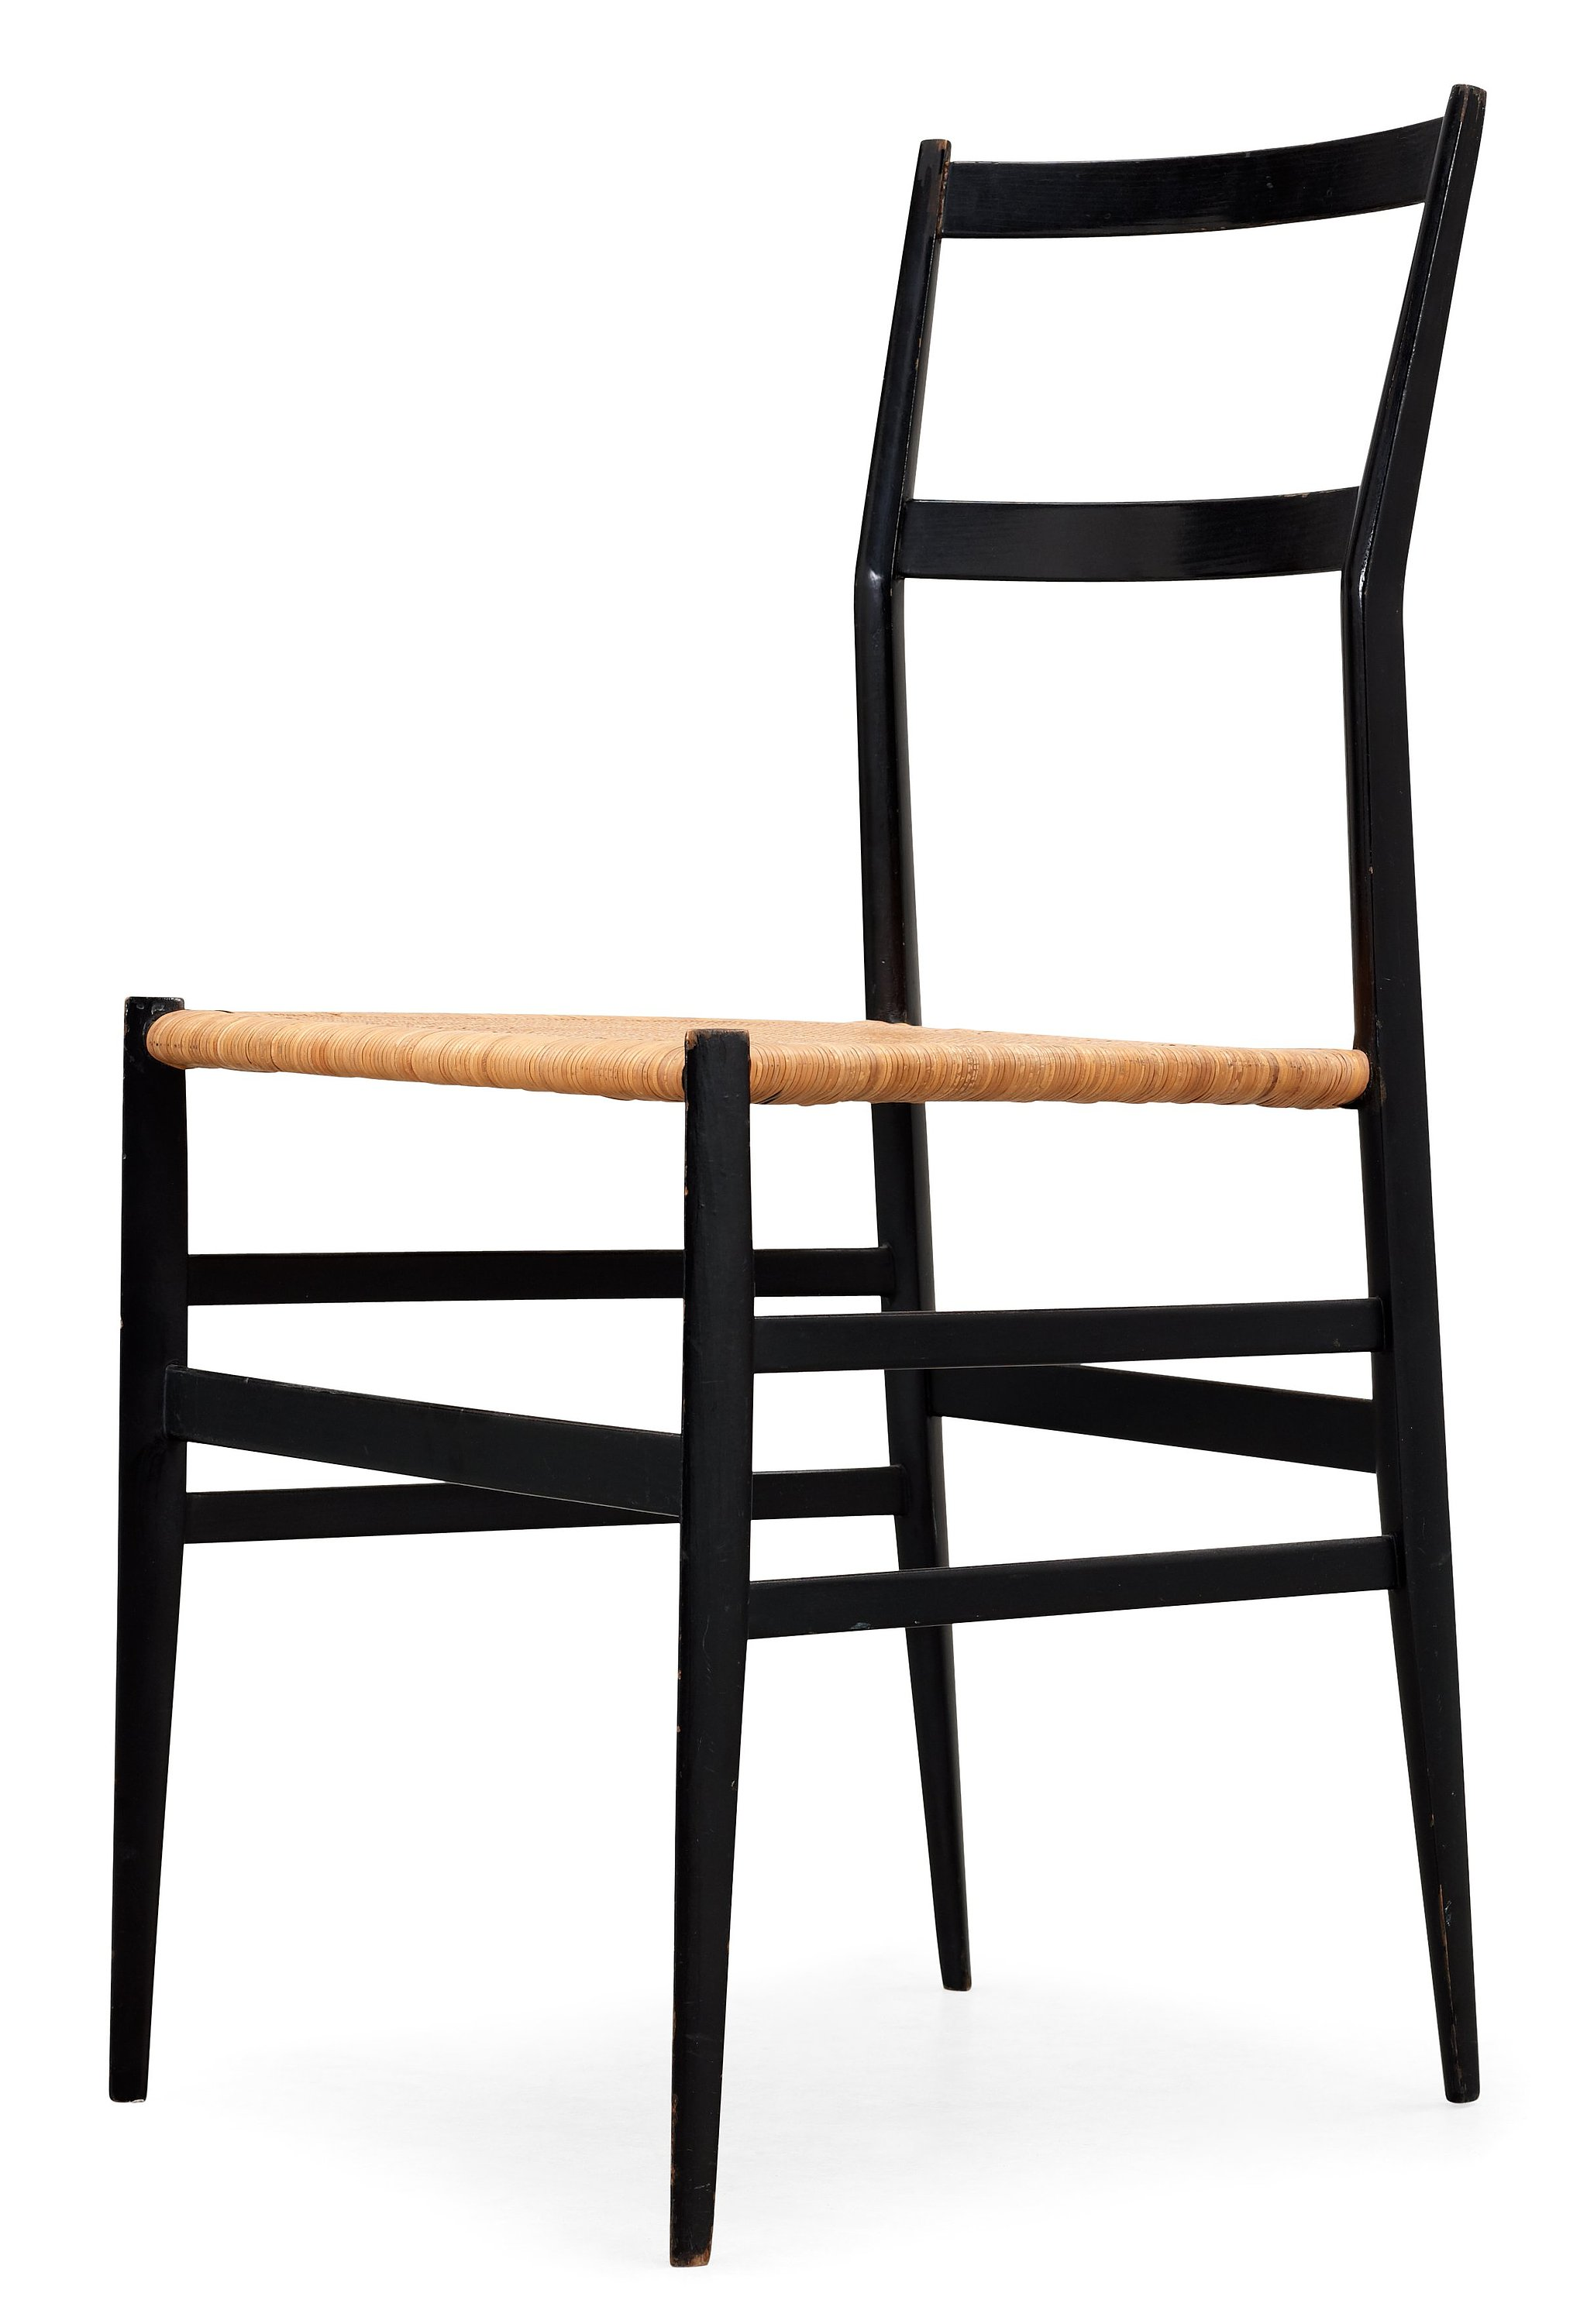 gio ponti chair hanging townsville a 39superleggera 39 cassina italy black